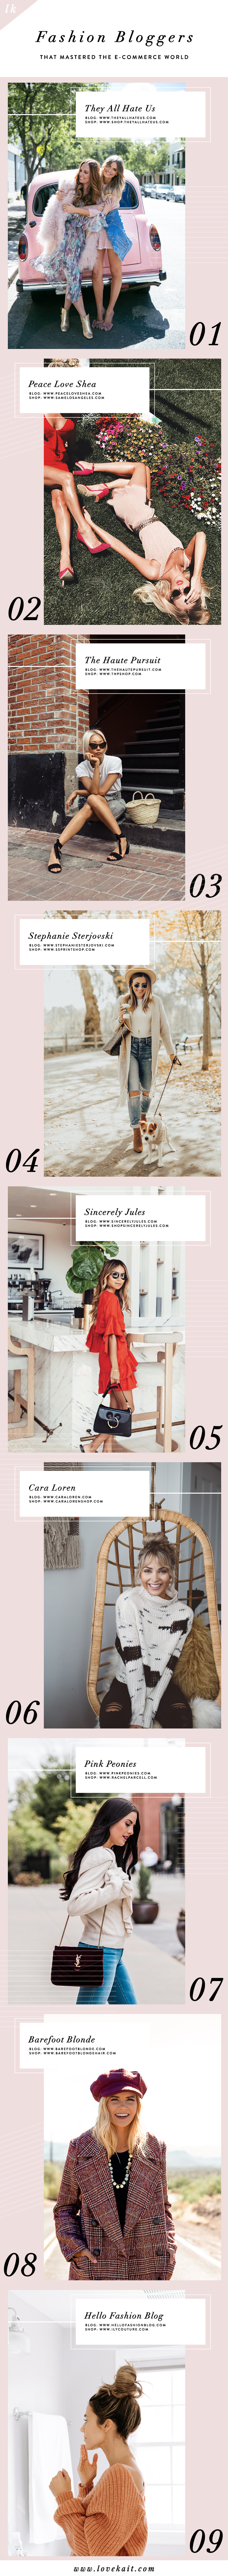 Fashion Bloggers Who Opened an Online Store #boutique #openaboutique #shopify #fashionbloggers #caraloren #barefootblonde #songofstyle #pinkpeonies #rachparcell